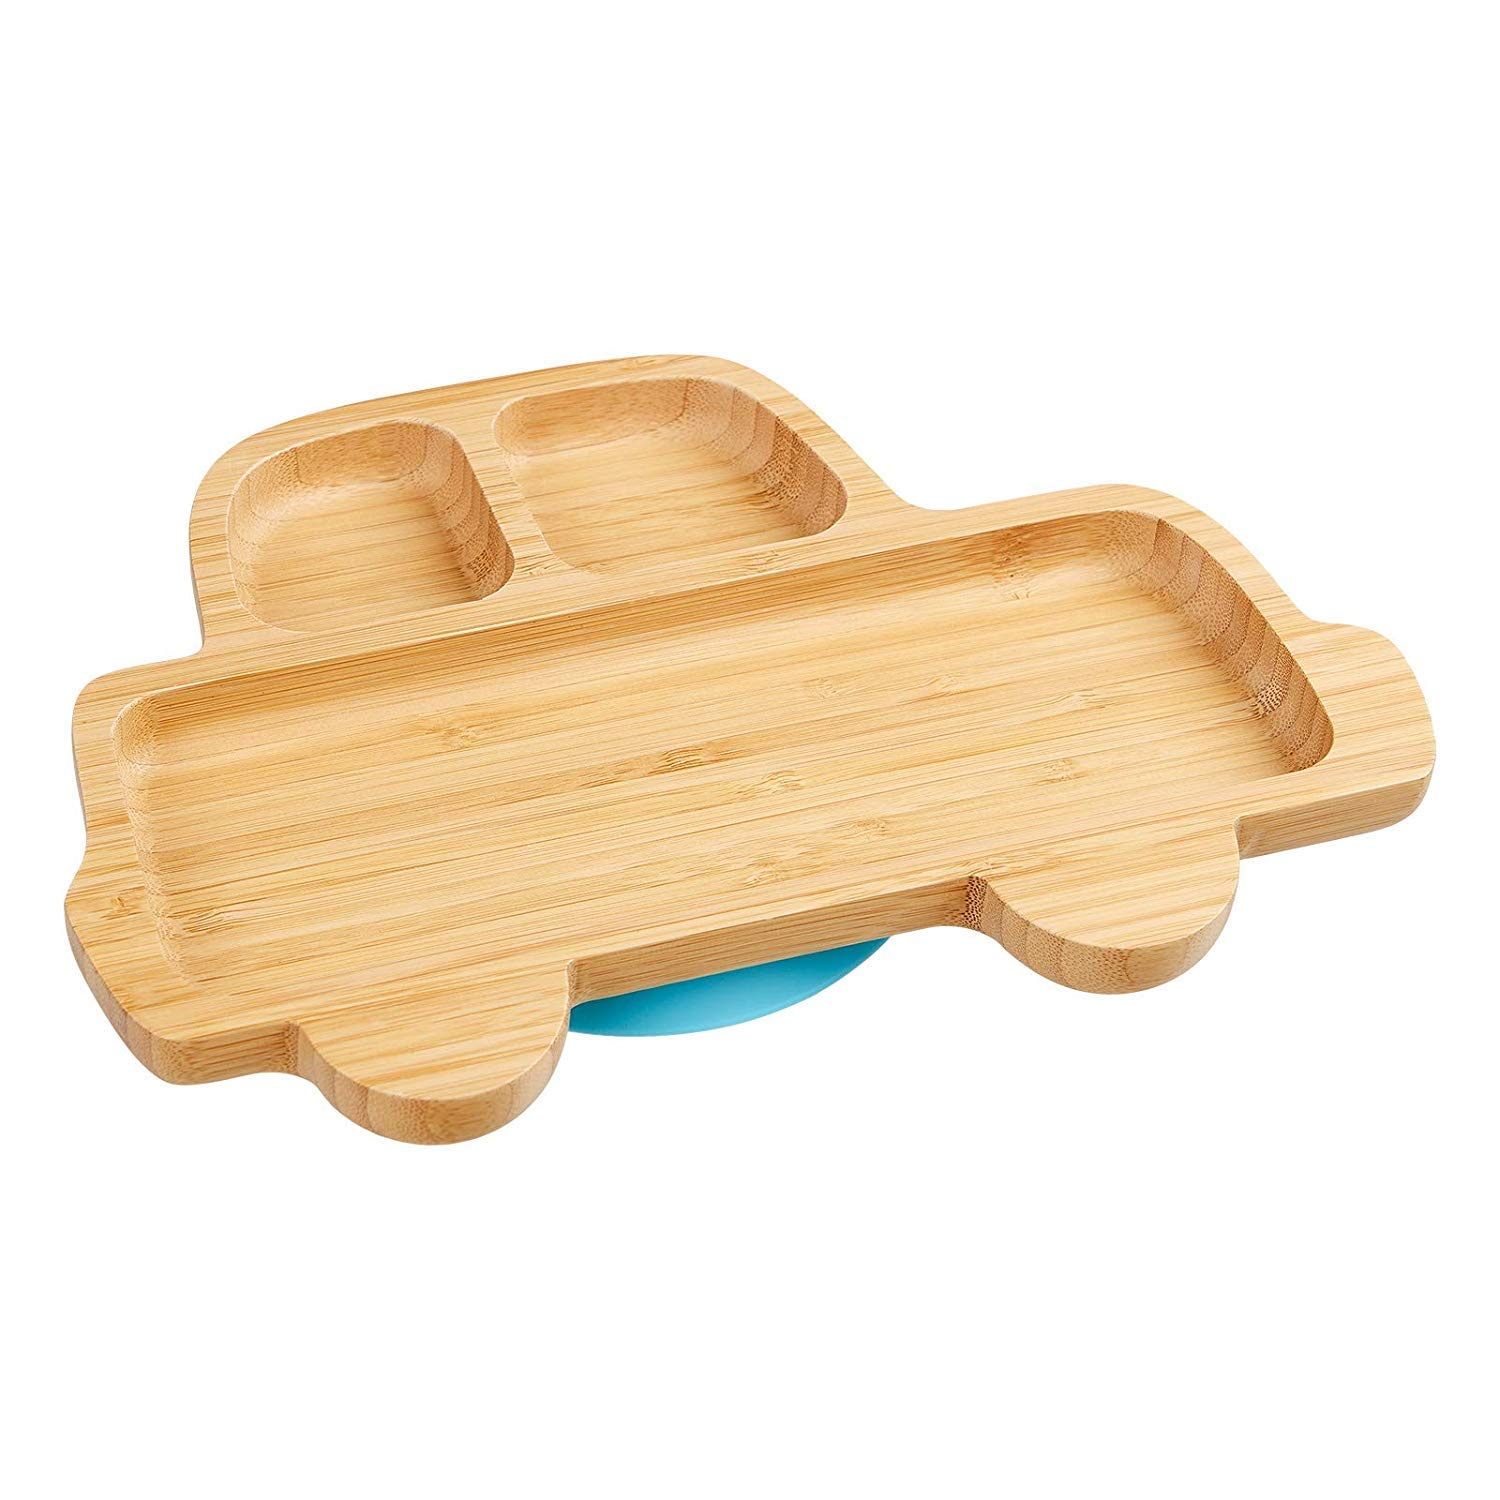 Bamboo Baby Toddler Suction Plate, Stay Put Feeding Dinner Dish (Blue)